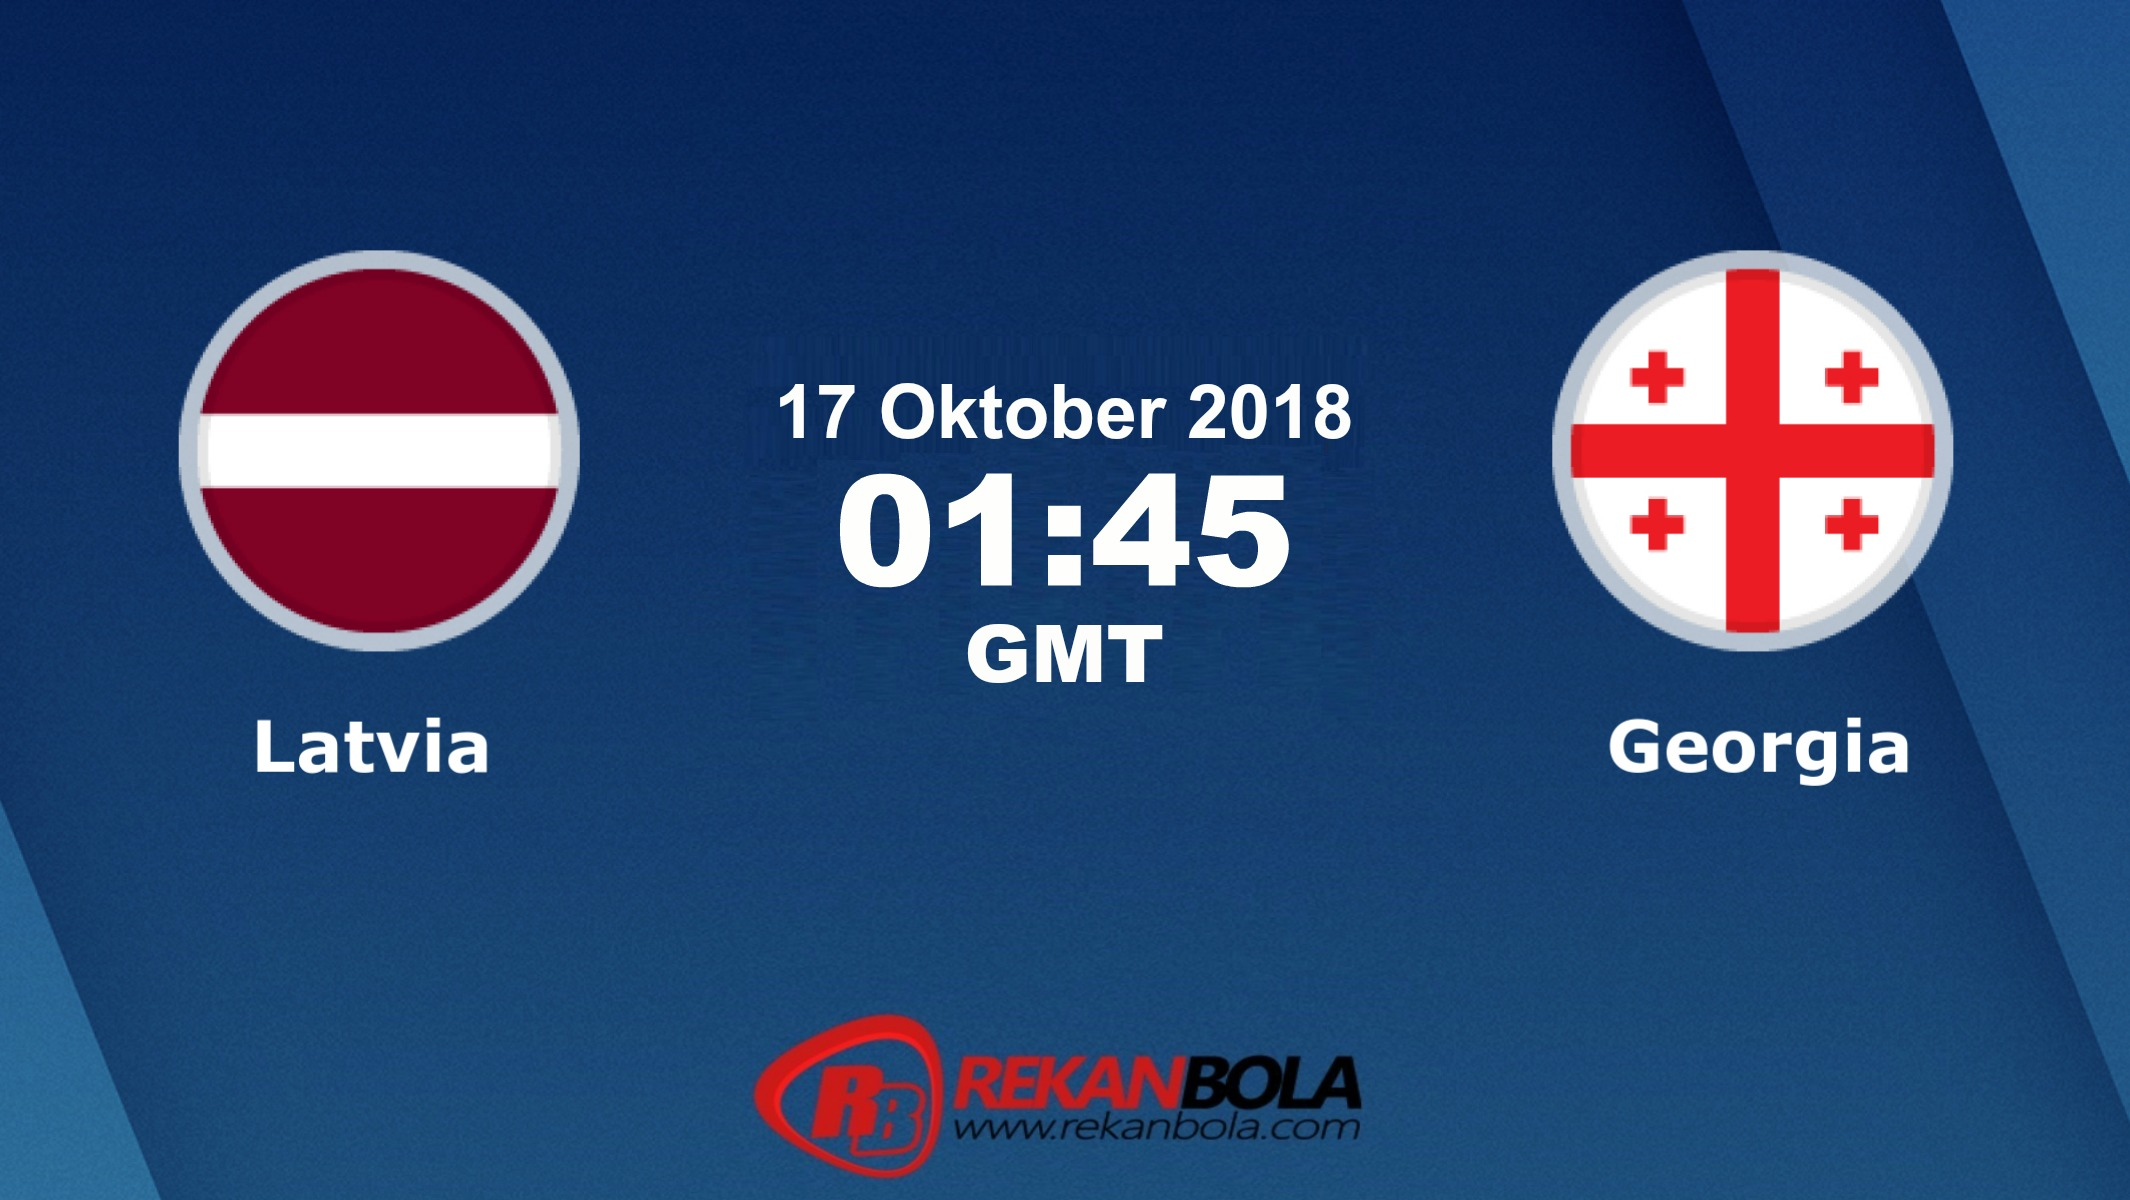 Nonton Siaran Live Streaming Latvia Vs Georgia 17 Oktober 2018